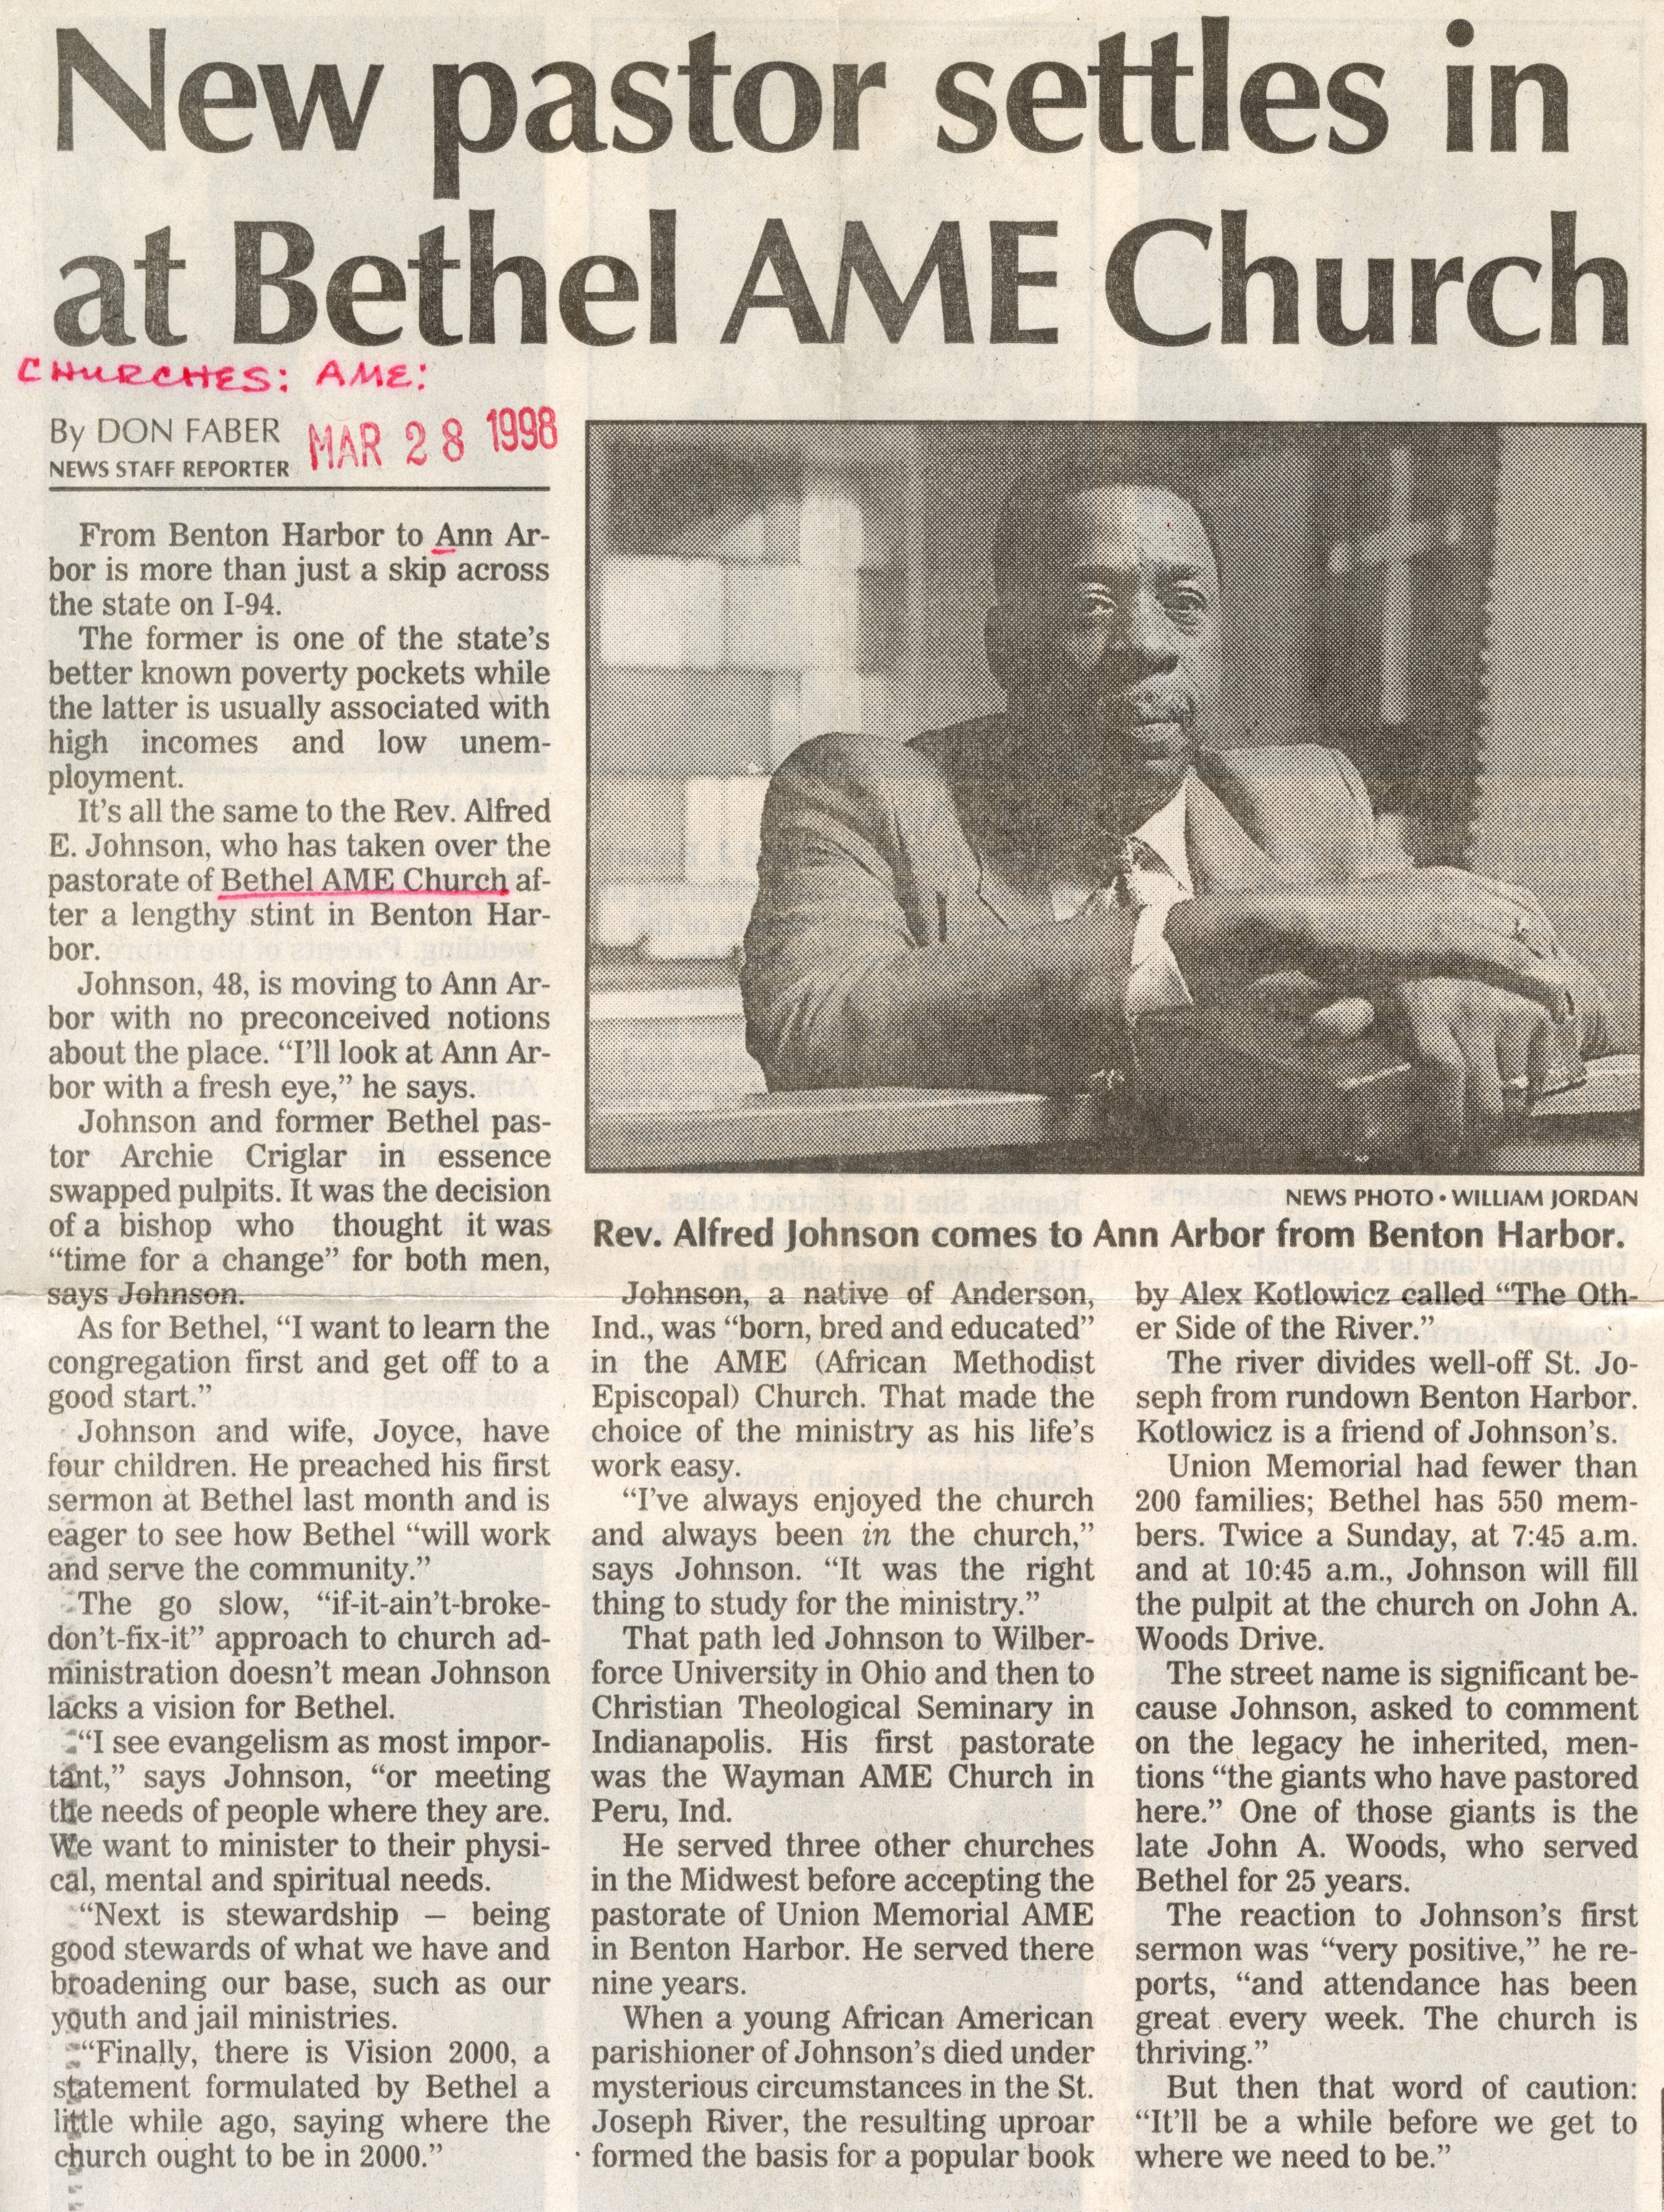 New pastor settles in at Bethel AME Church image